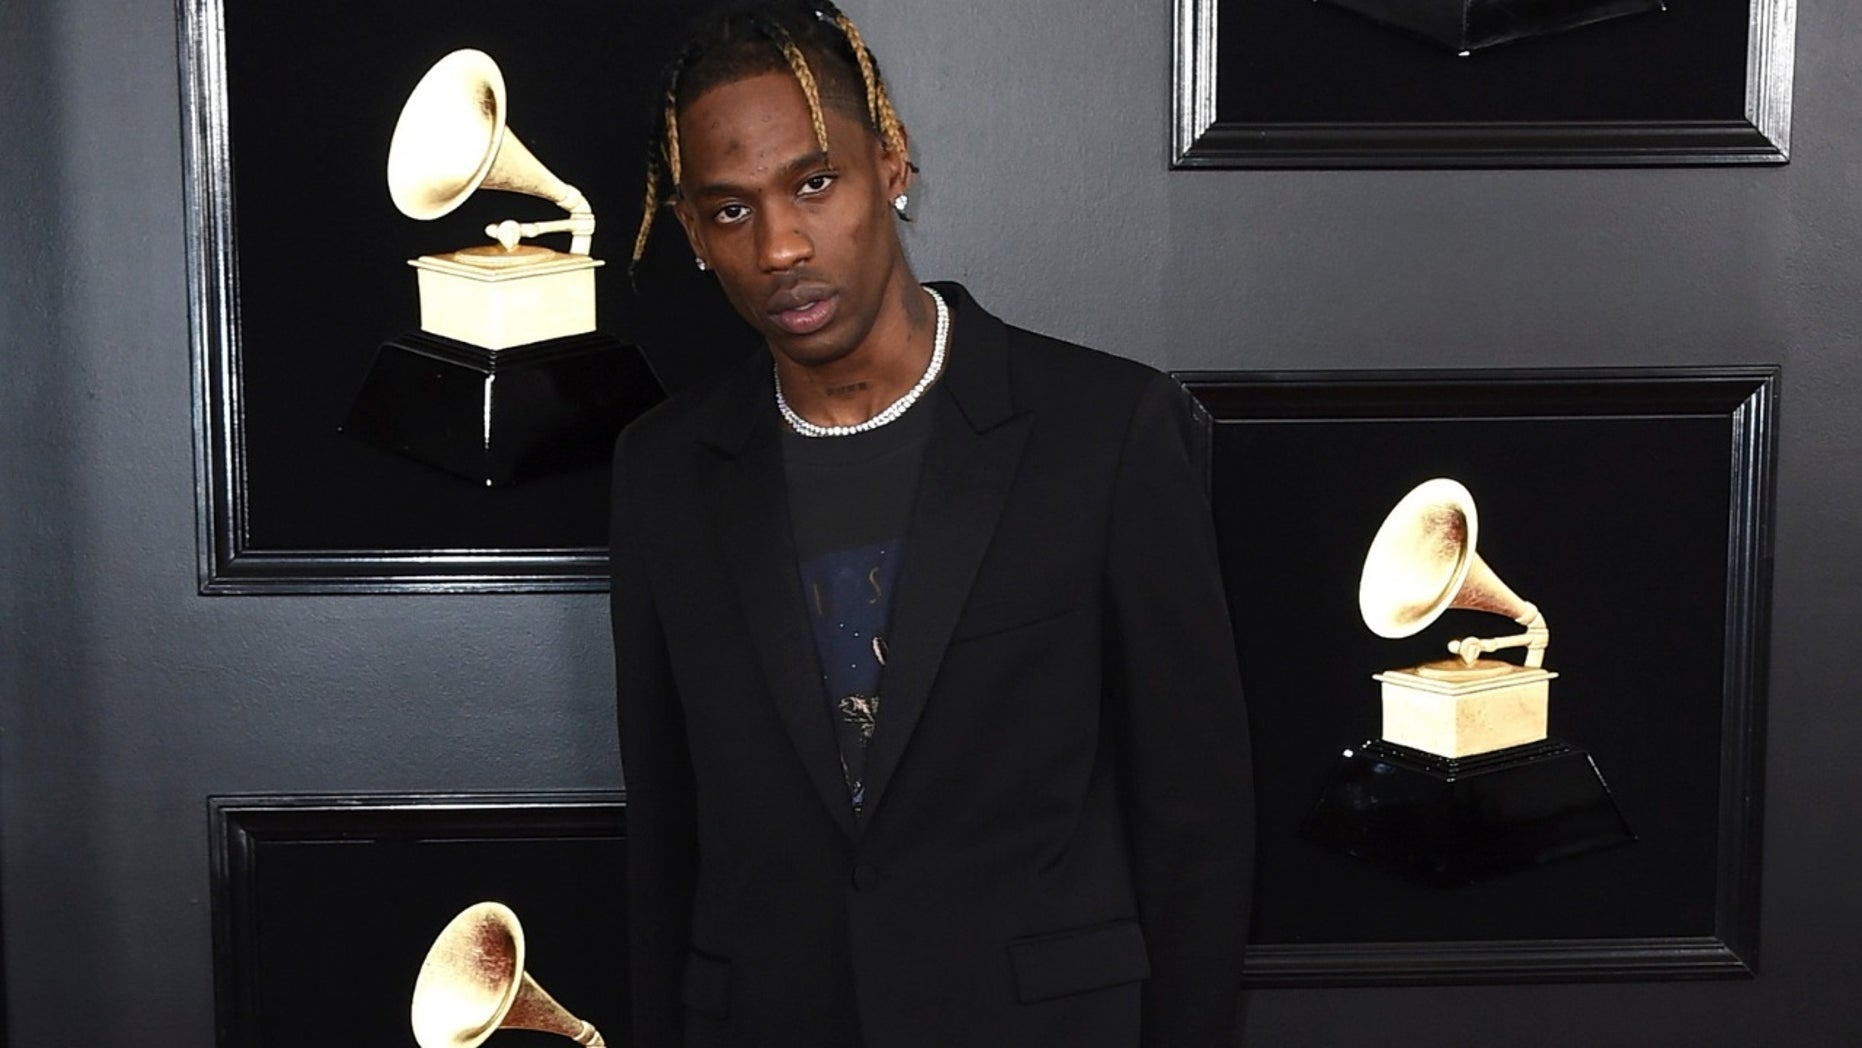 Oklahoma police shot pepper balls to disperse a crowd that rushed the doors of an arena after rapper Travis Scott abruptly postponed a sold-out concert on Monday night.